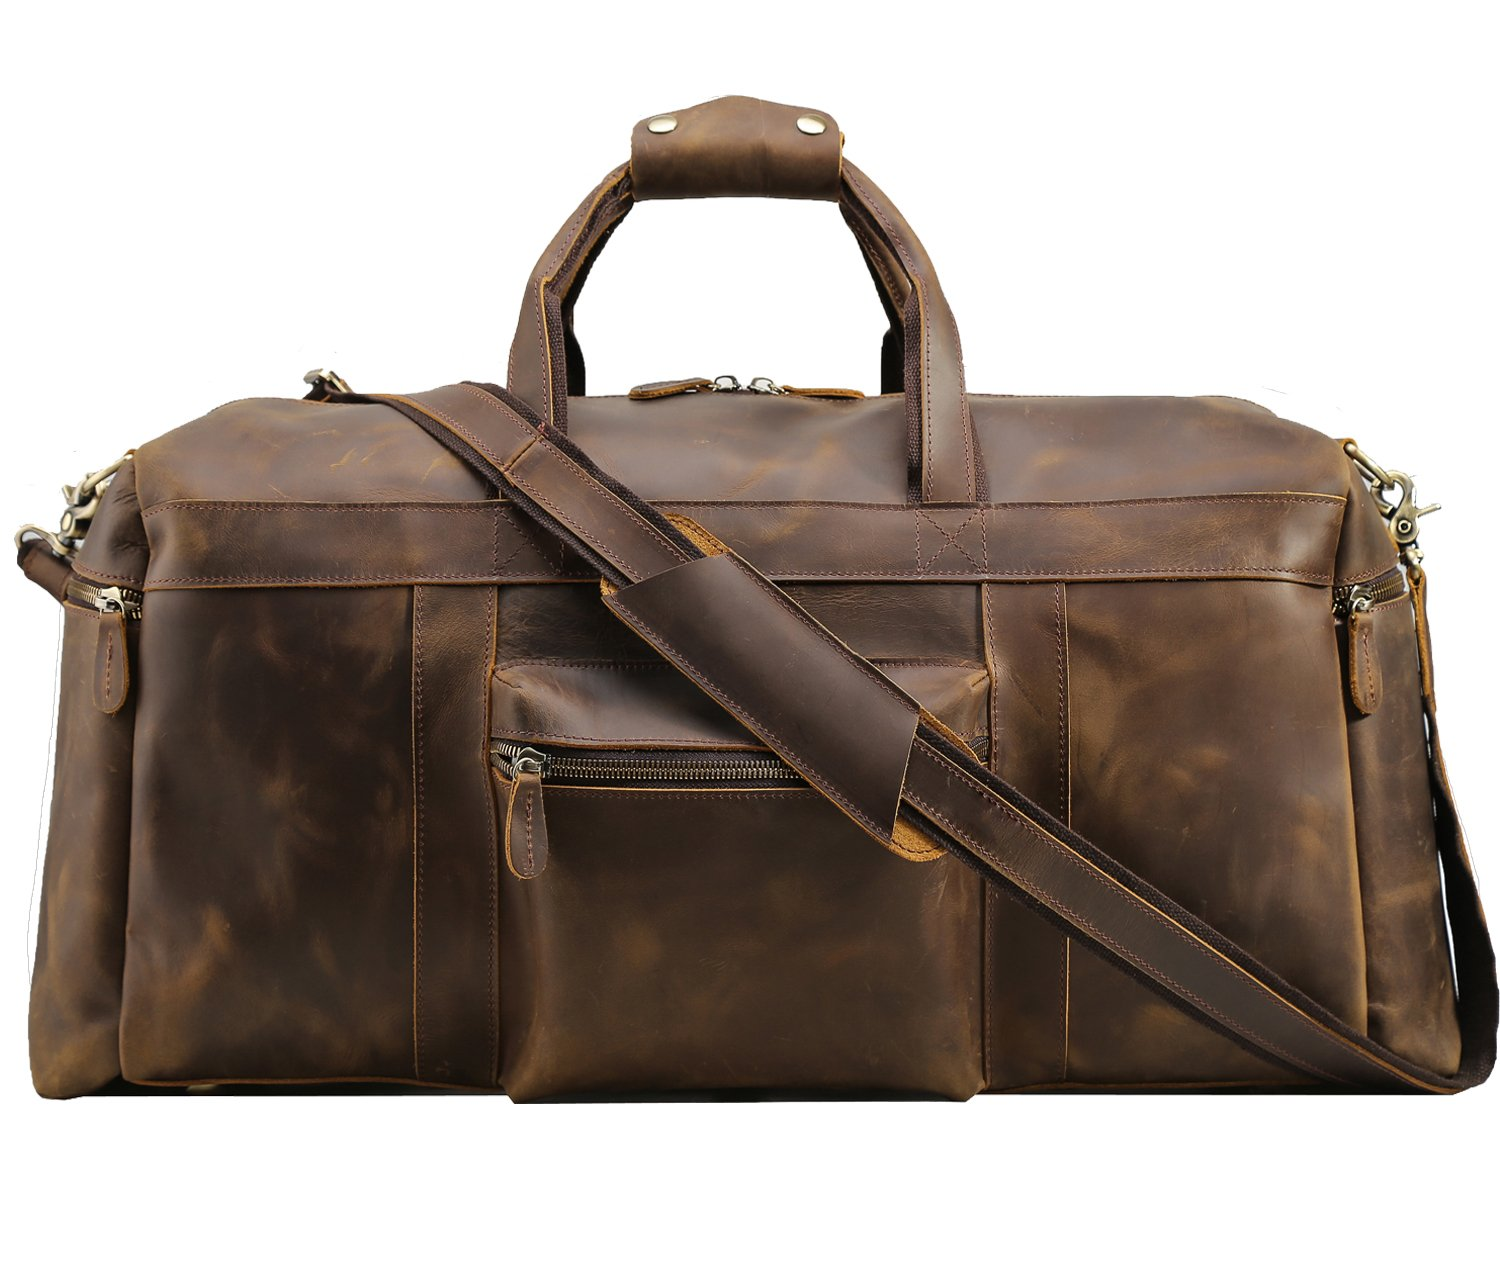 Texbo Men's Thick Cowhide Leather Vintage Big Travel Duffle Luggage Bag (Brown X Large 25'')